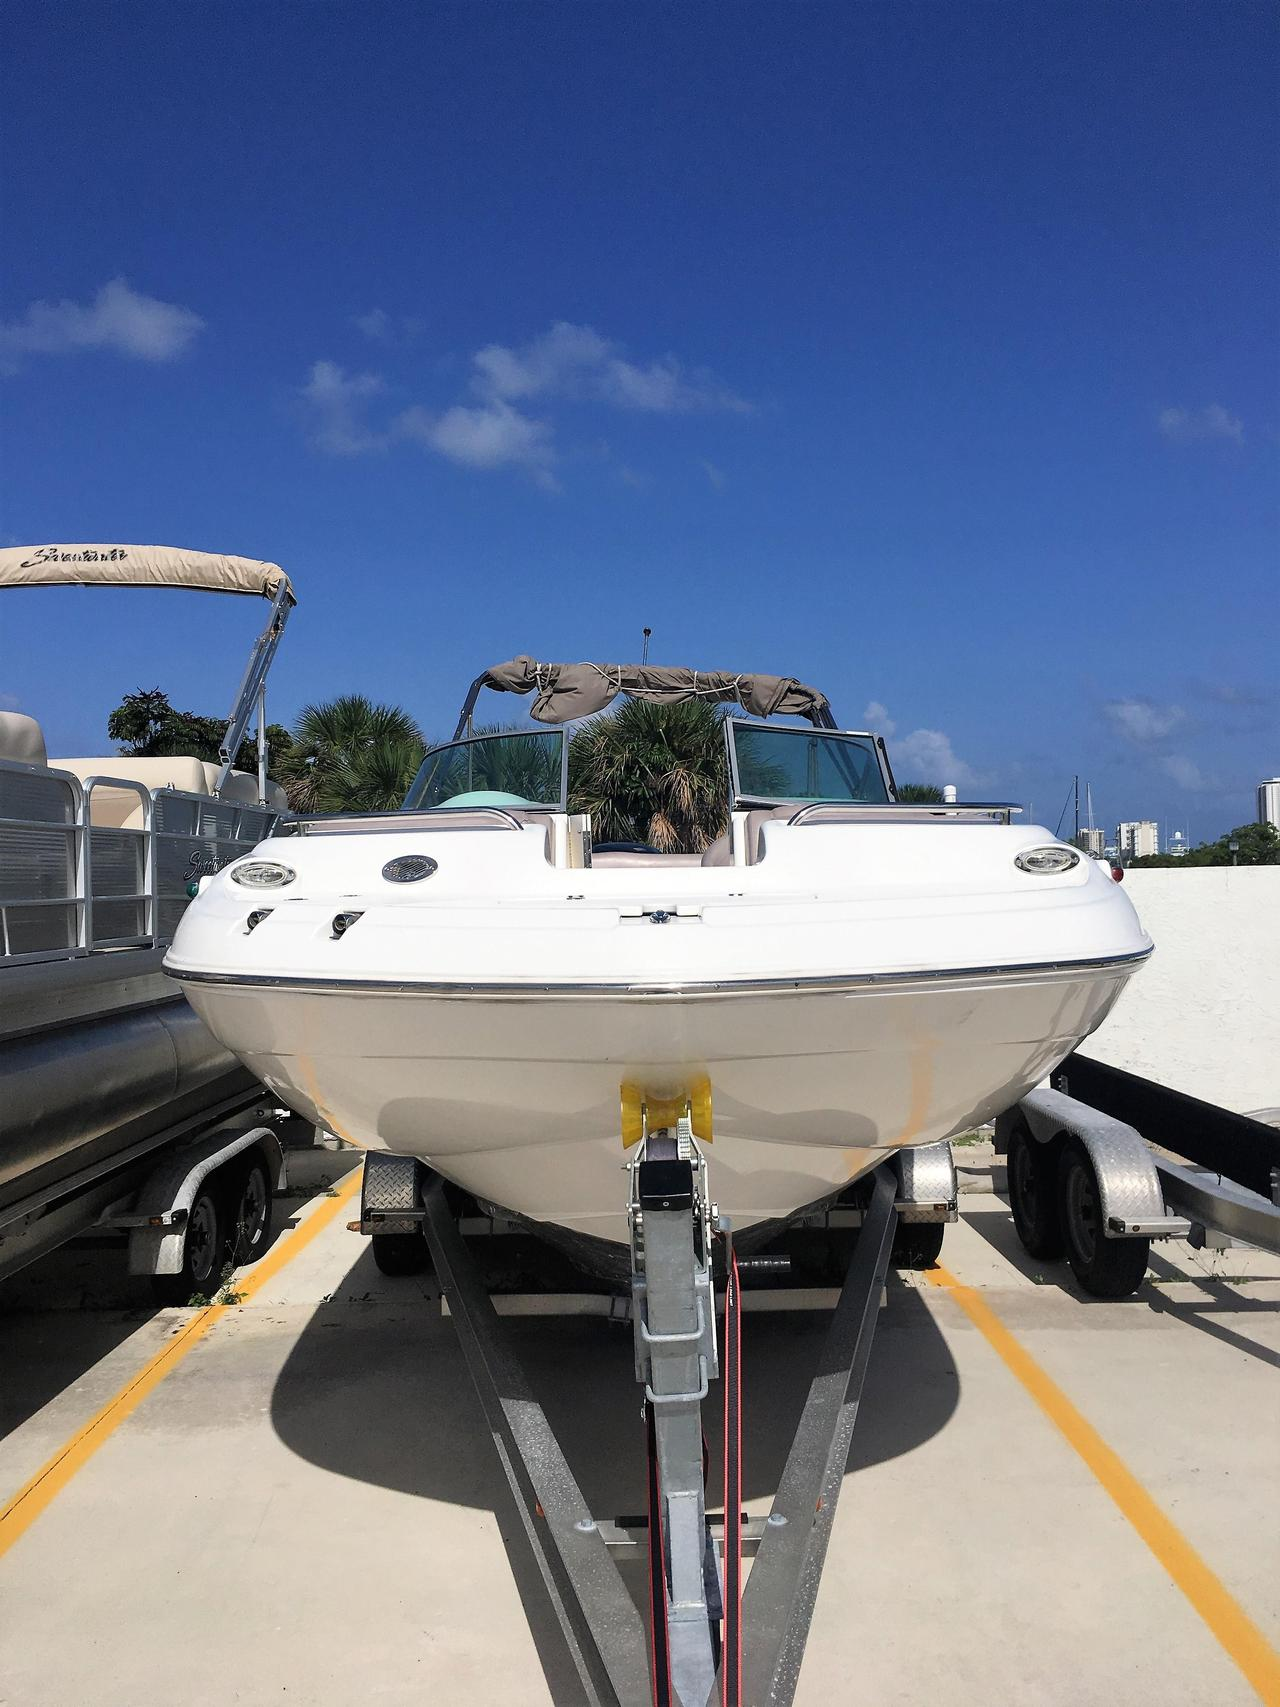 2015 used hurricane sundeck 2400 ob deck boat for sale for Hurricane sundeck for sale